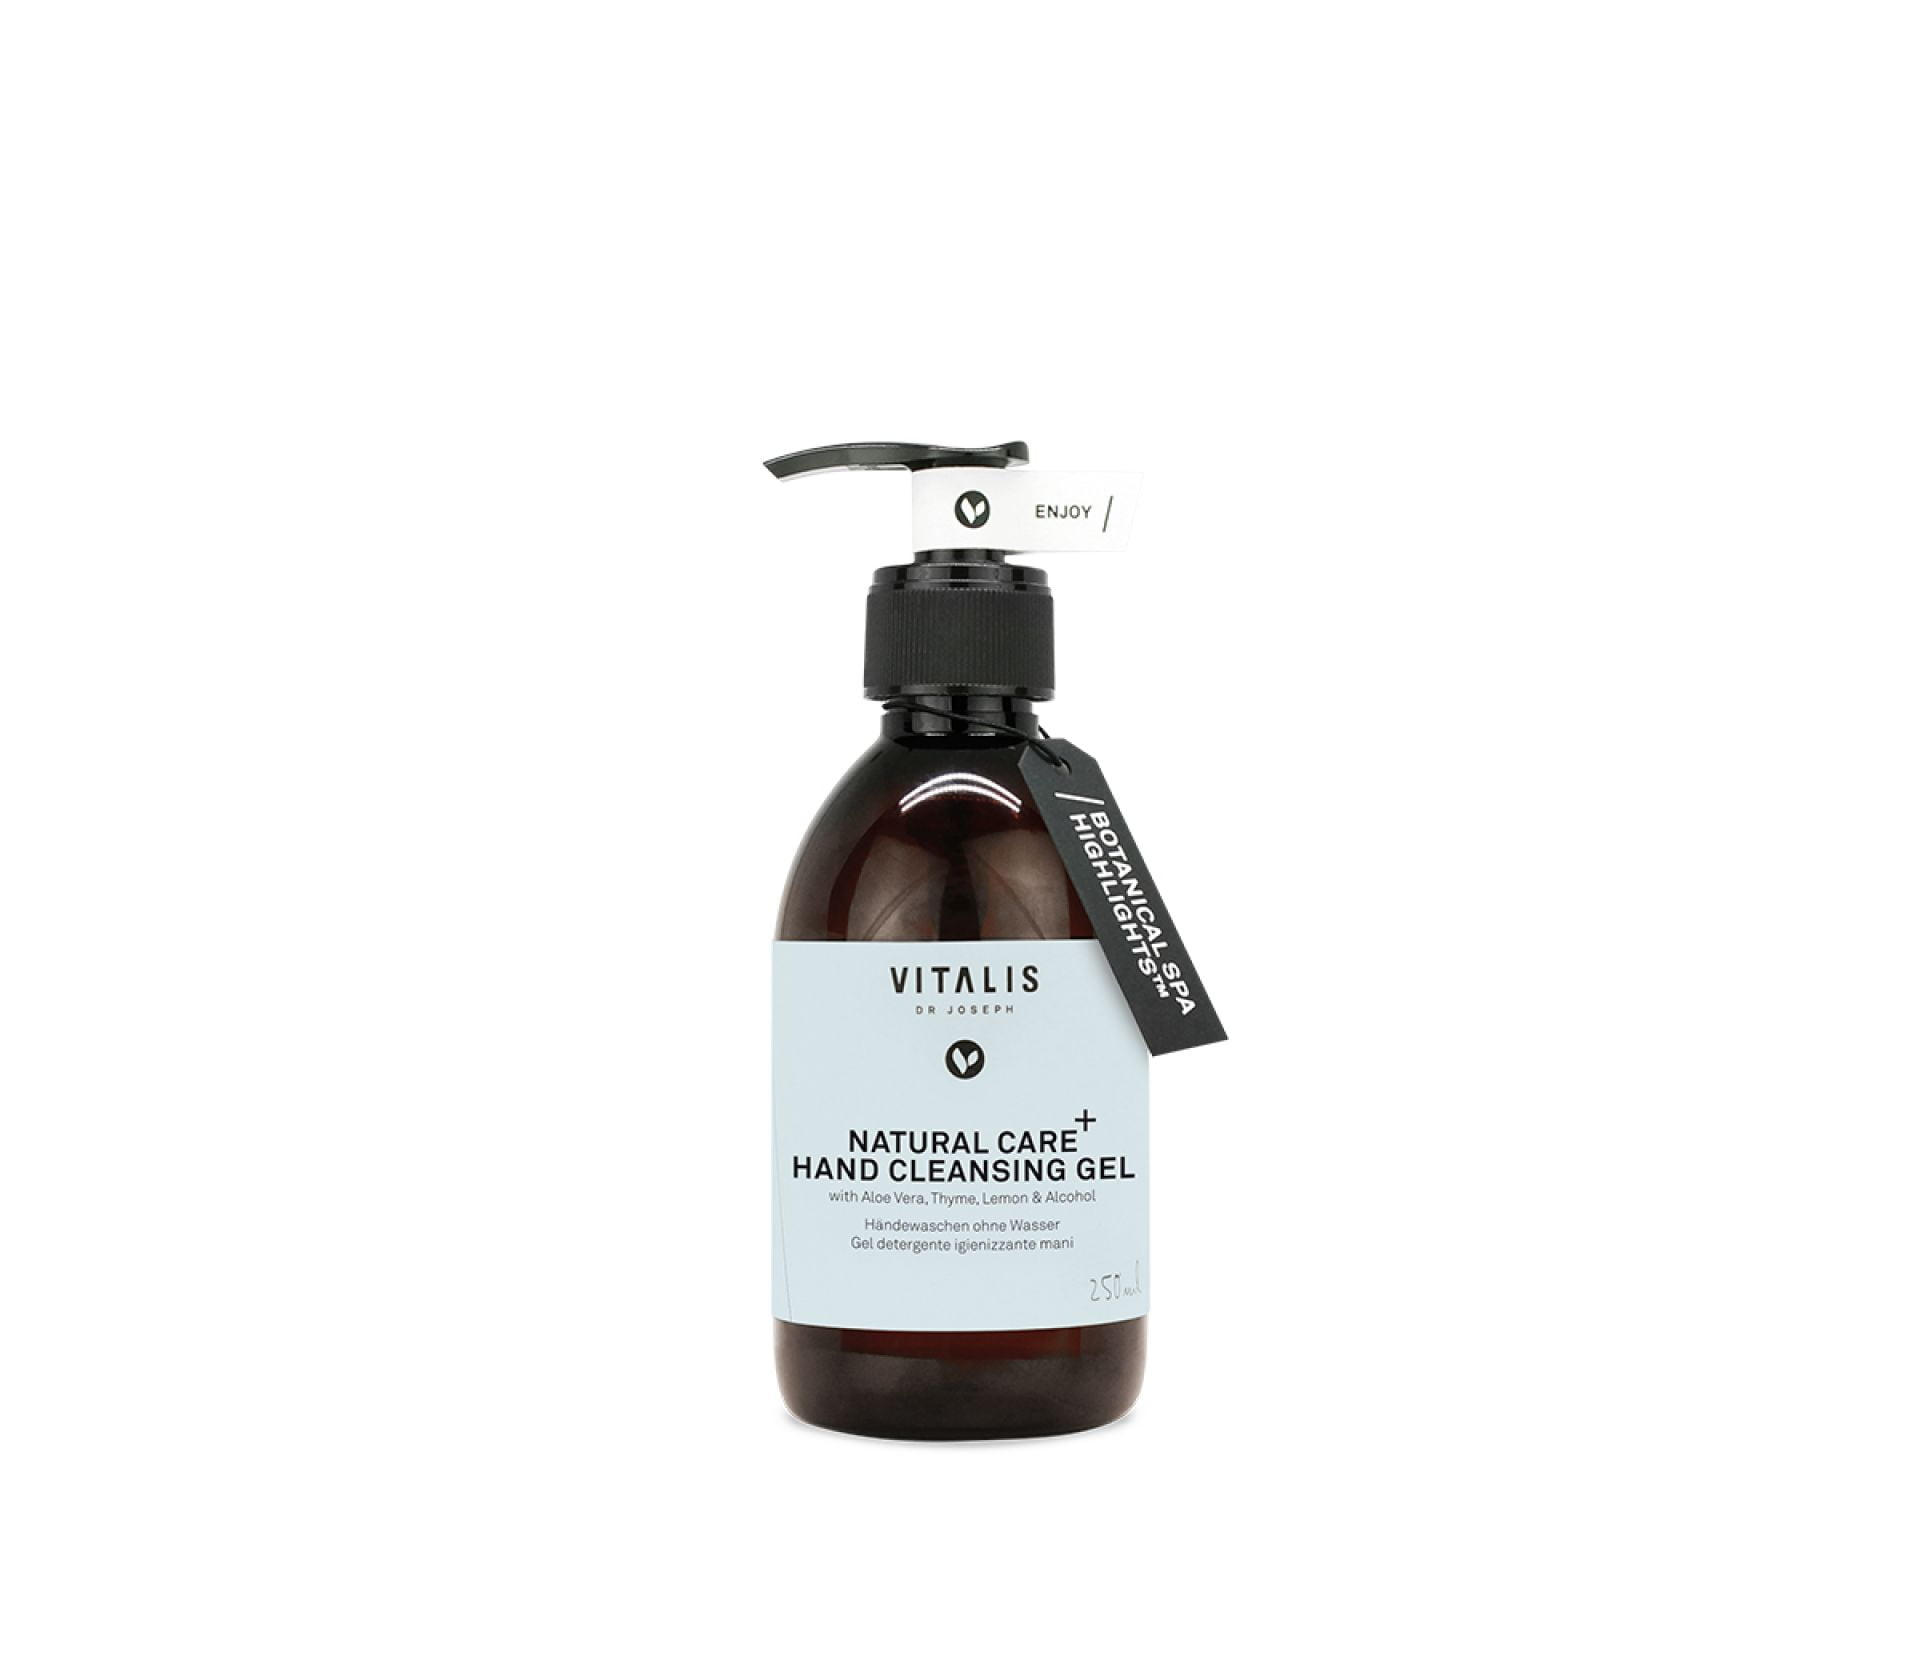 NATURAL CARING HAND CLEANSING GEL